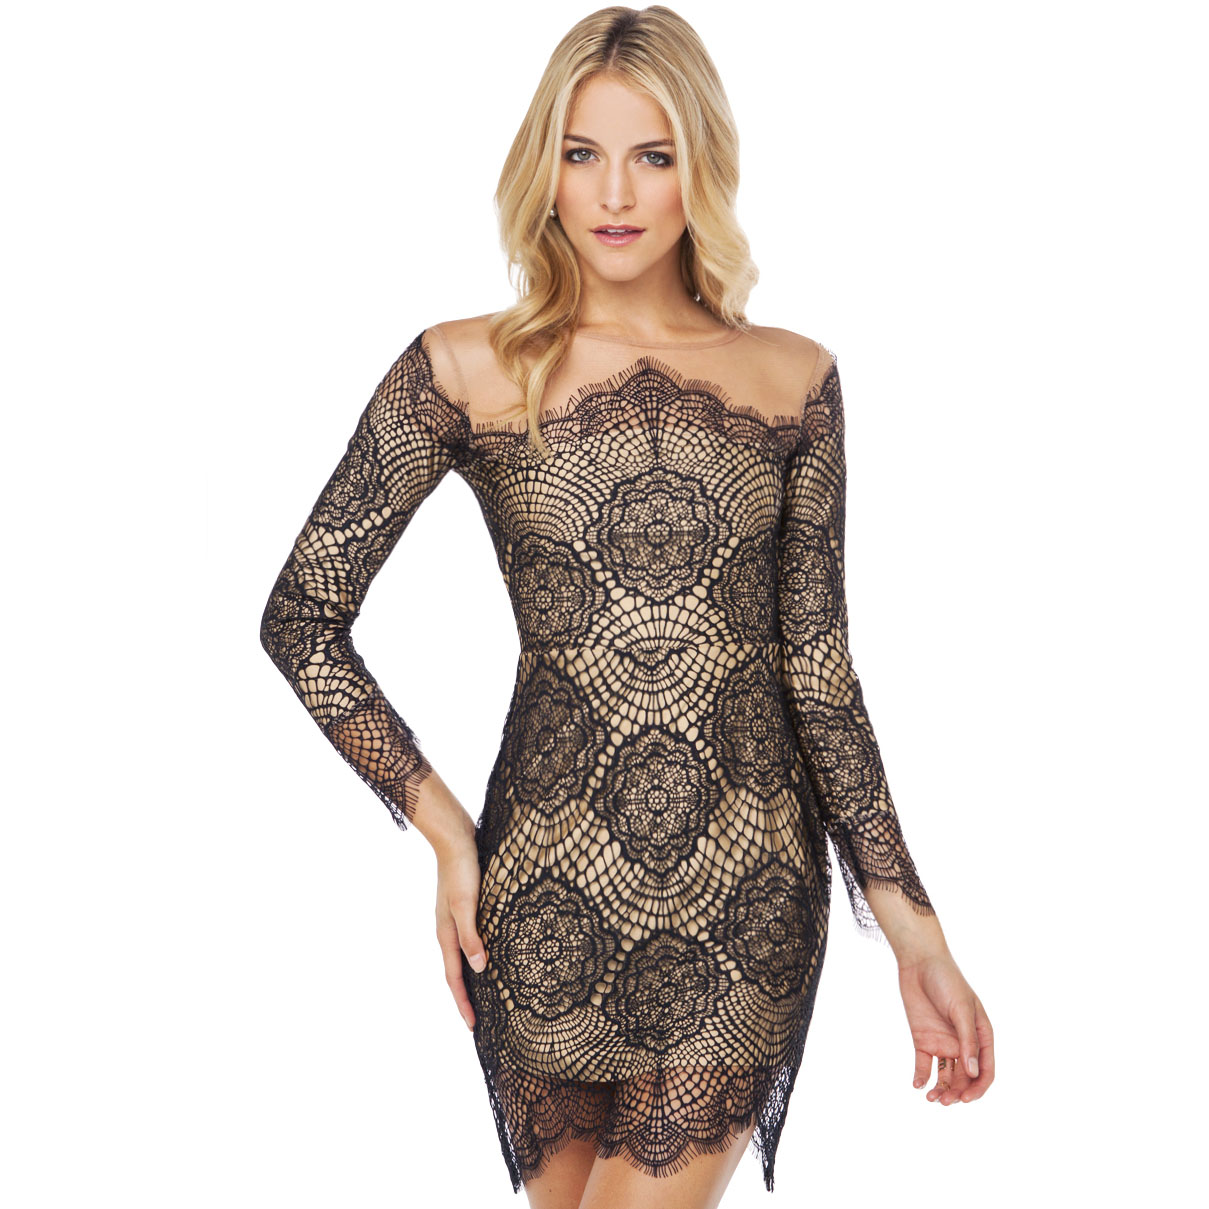 Aliexpress.com : Buy Free Shipping 2014 fashion Luxury lace gauze patchwork lining long sleeve o neck dress one piece dress from Reliable dress jeans suppliers on ED FASHION.